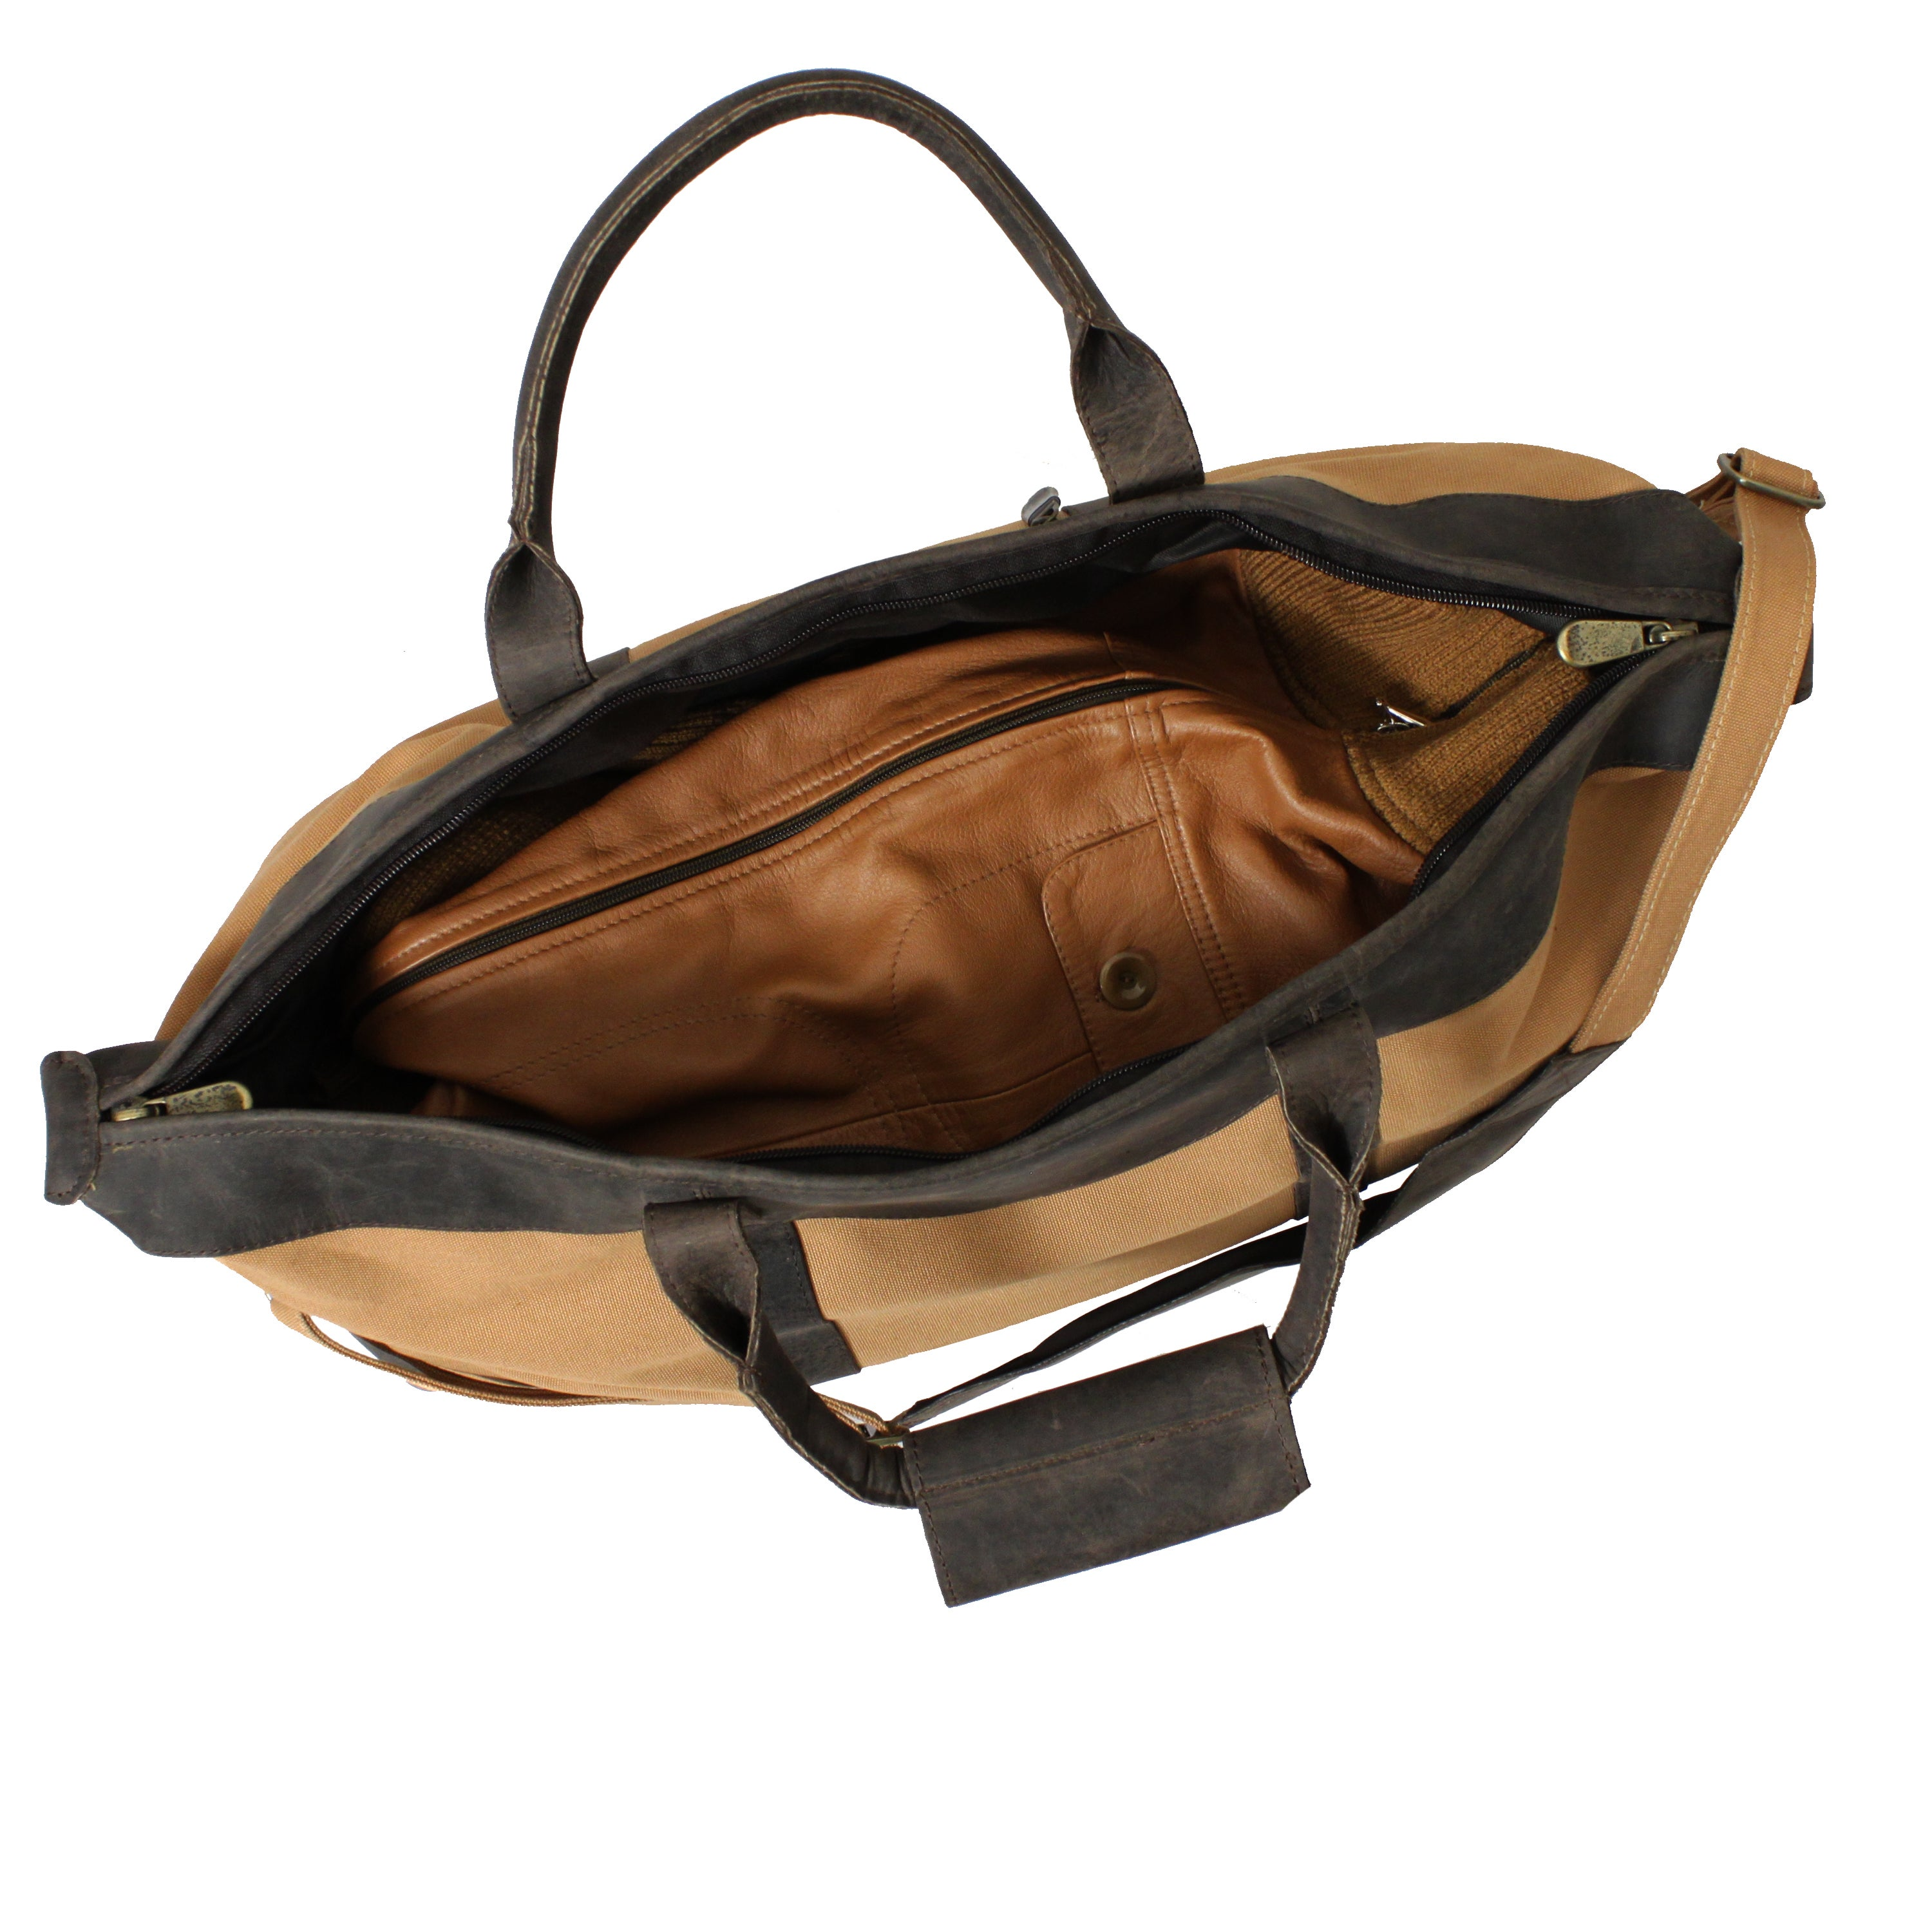 c6b4727fd2 Shop Utah 22-inch Leather  Canvas Lightweight Carry On Duffel Bag - Free  Shipping Today - Overstock - 9189646